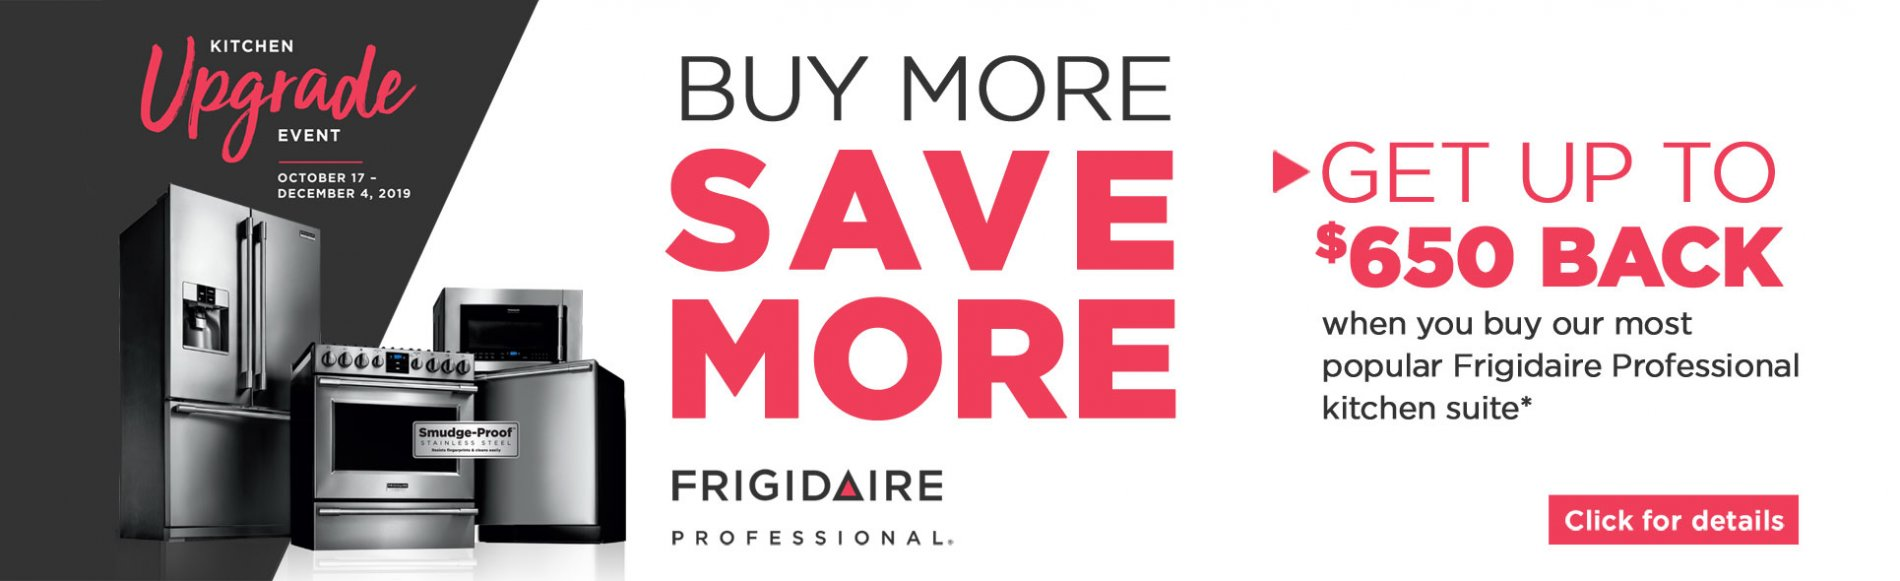 Frigidaire Pro Buy More Save More